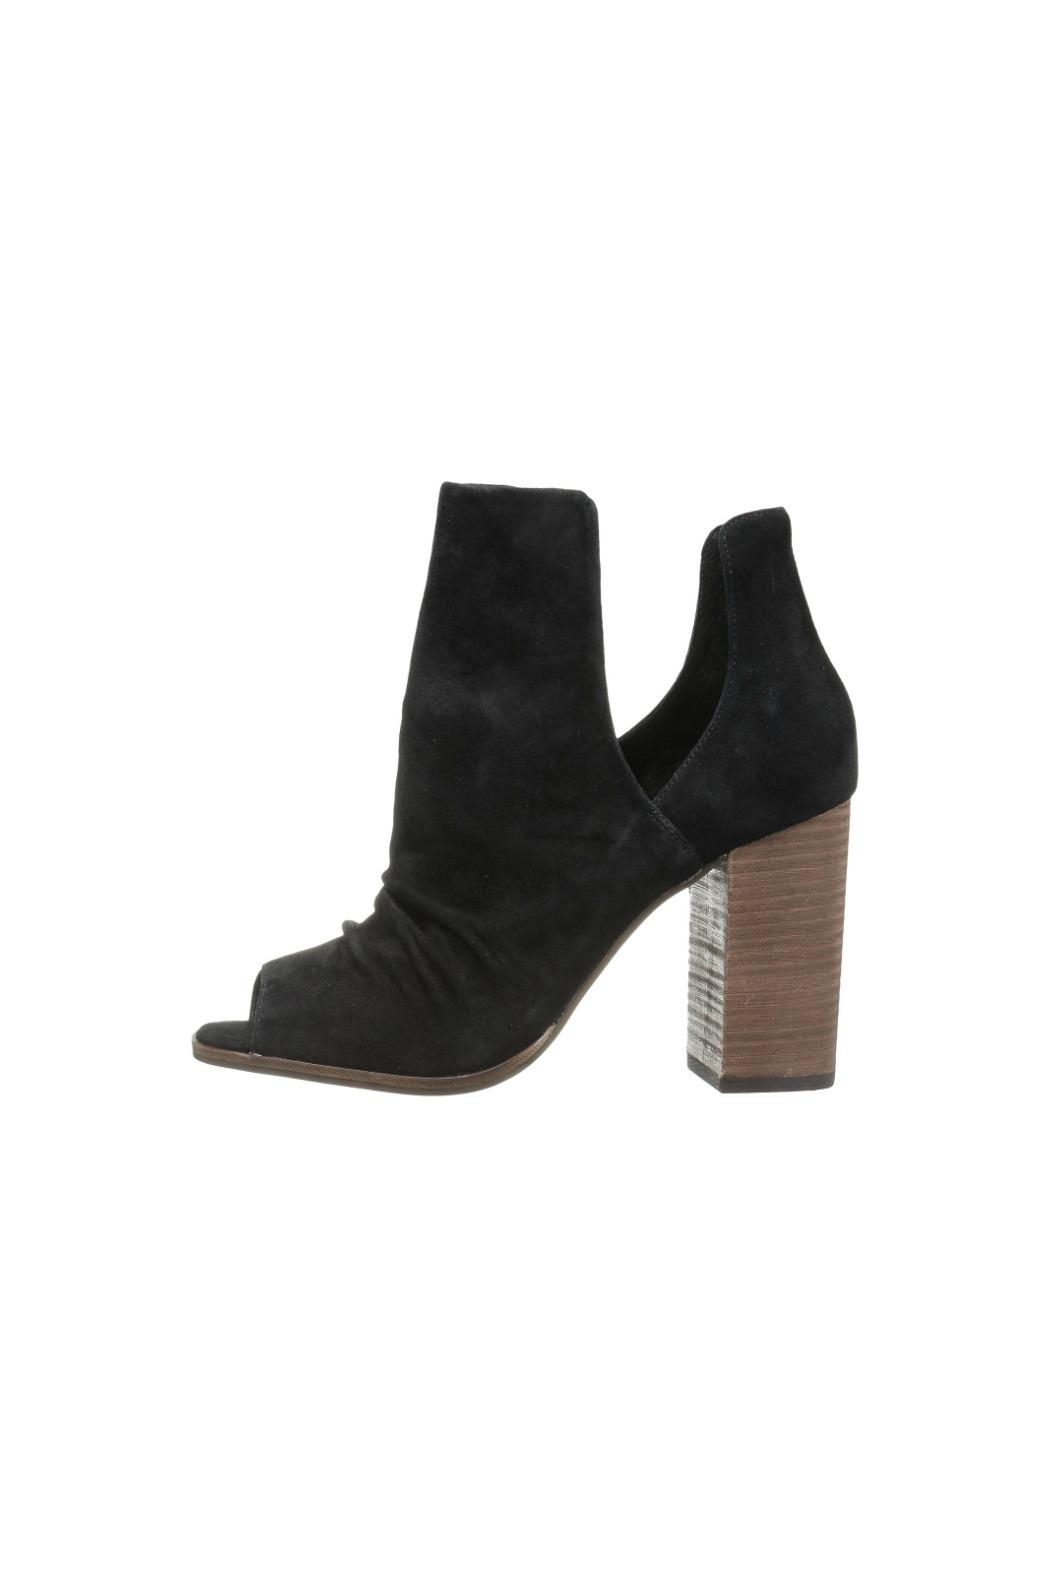 Kristin Cavallari for Chinese Laundry Lash Peep Toe Bootie - Front Cropped  Image 34bf7fa3f894